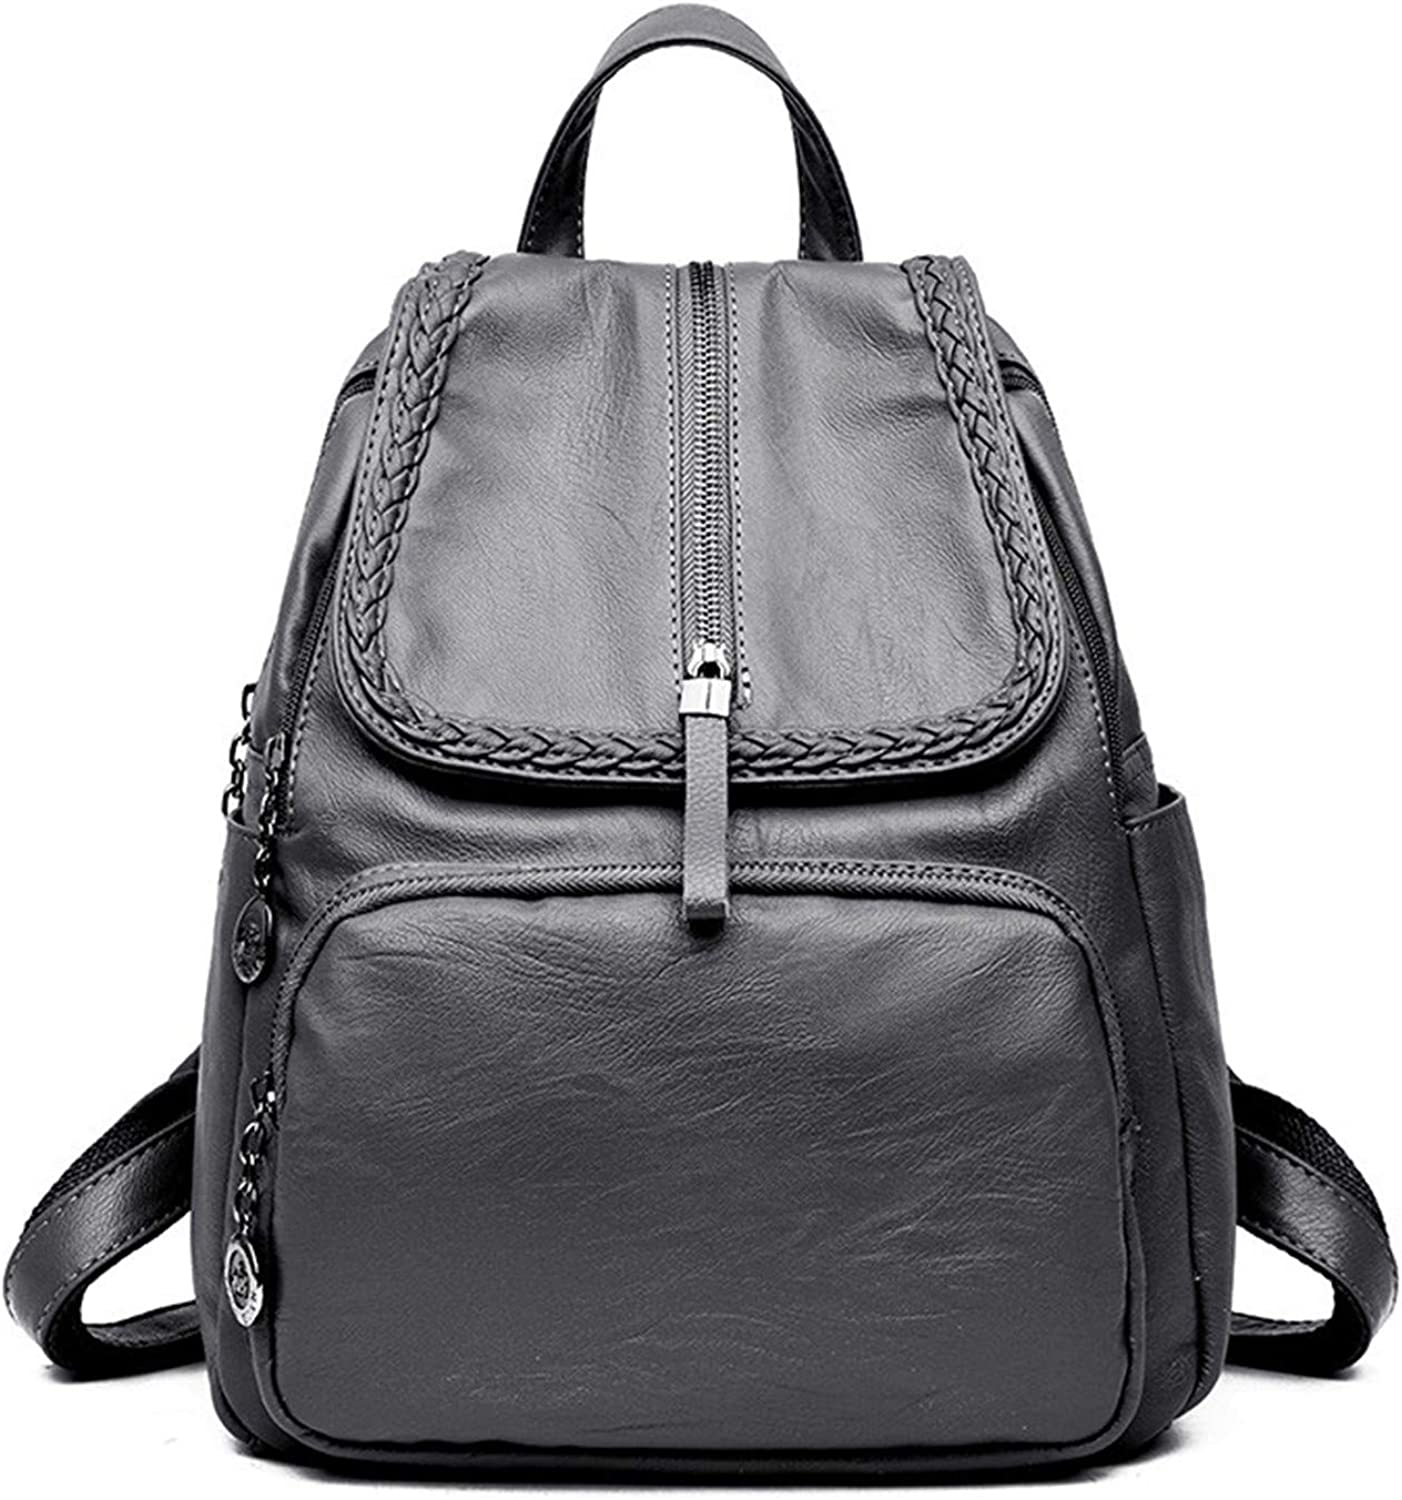 Hangton Casual Women Backpack School Bags For Teenagers Solid Female Leather Backpacks Zipper Bagpack,Gray,Onesize